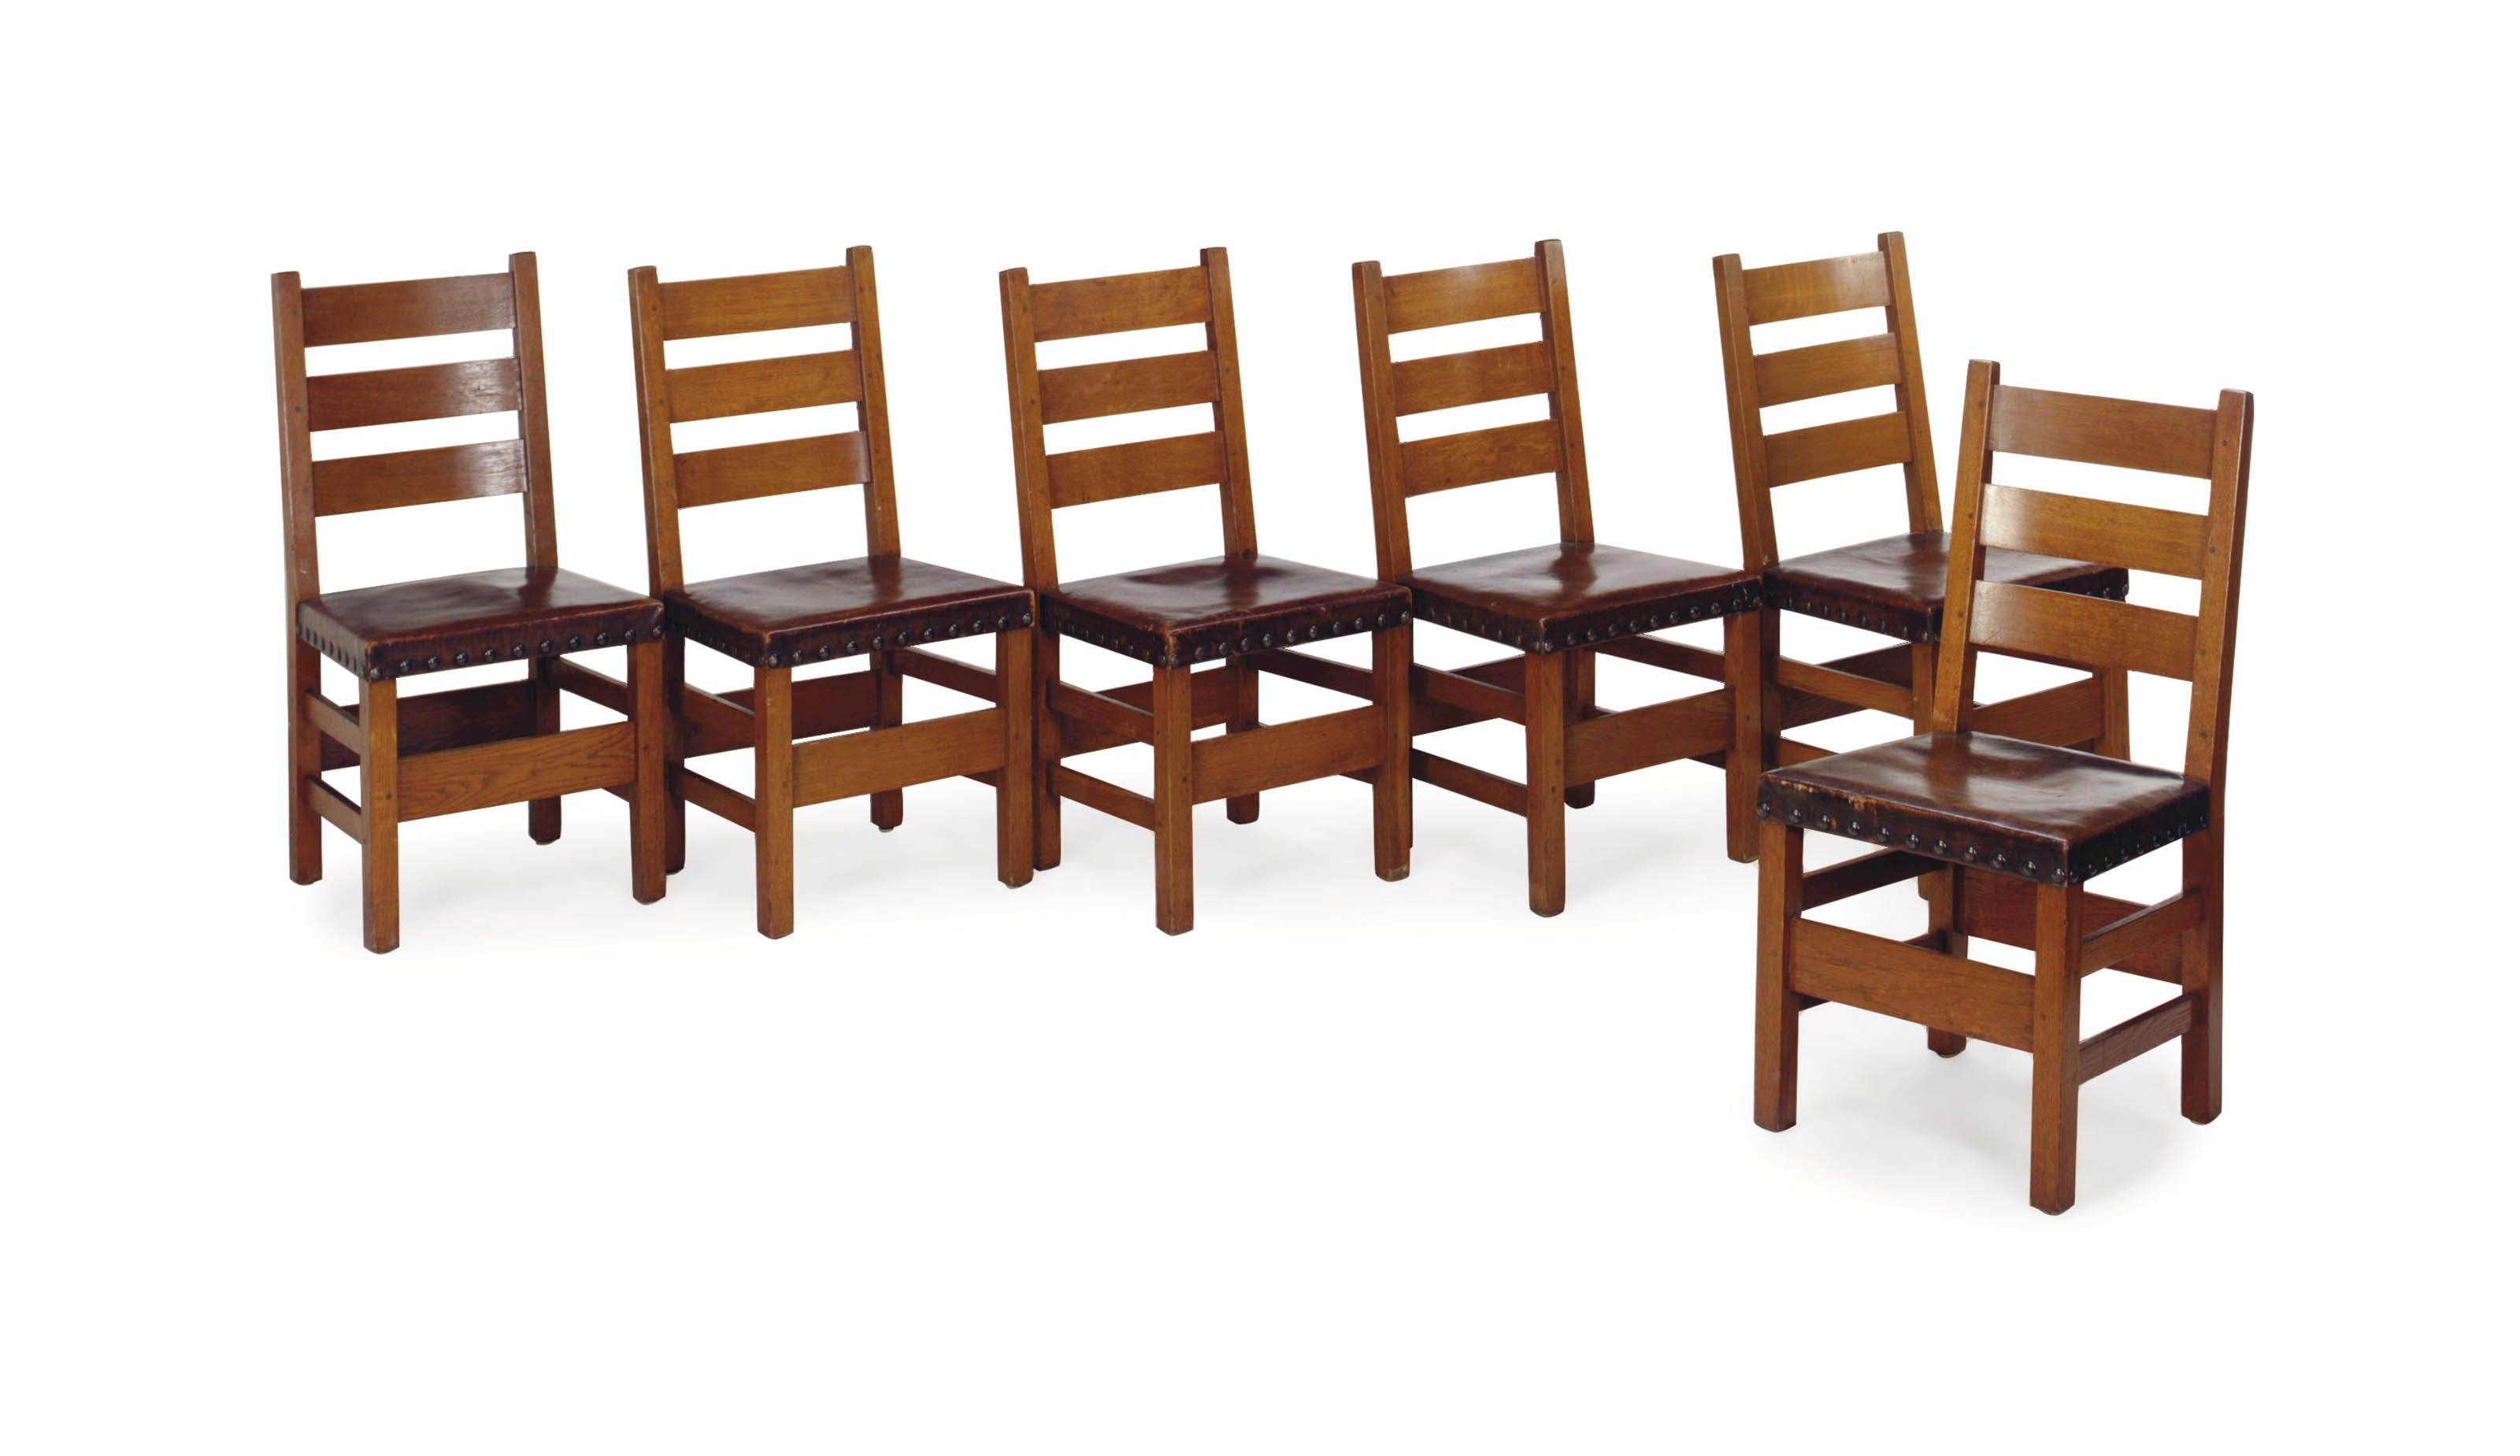 Pleasant A Set Of Six Oak Dining Chairs J G Stickley Circa 1907 Caraccident5 Cool Chair Designs And Ideas Caraccident5Info